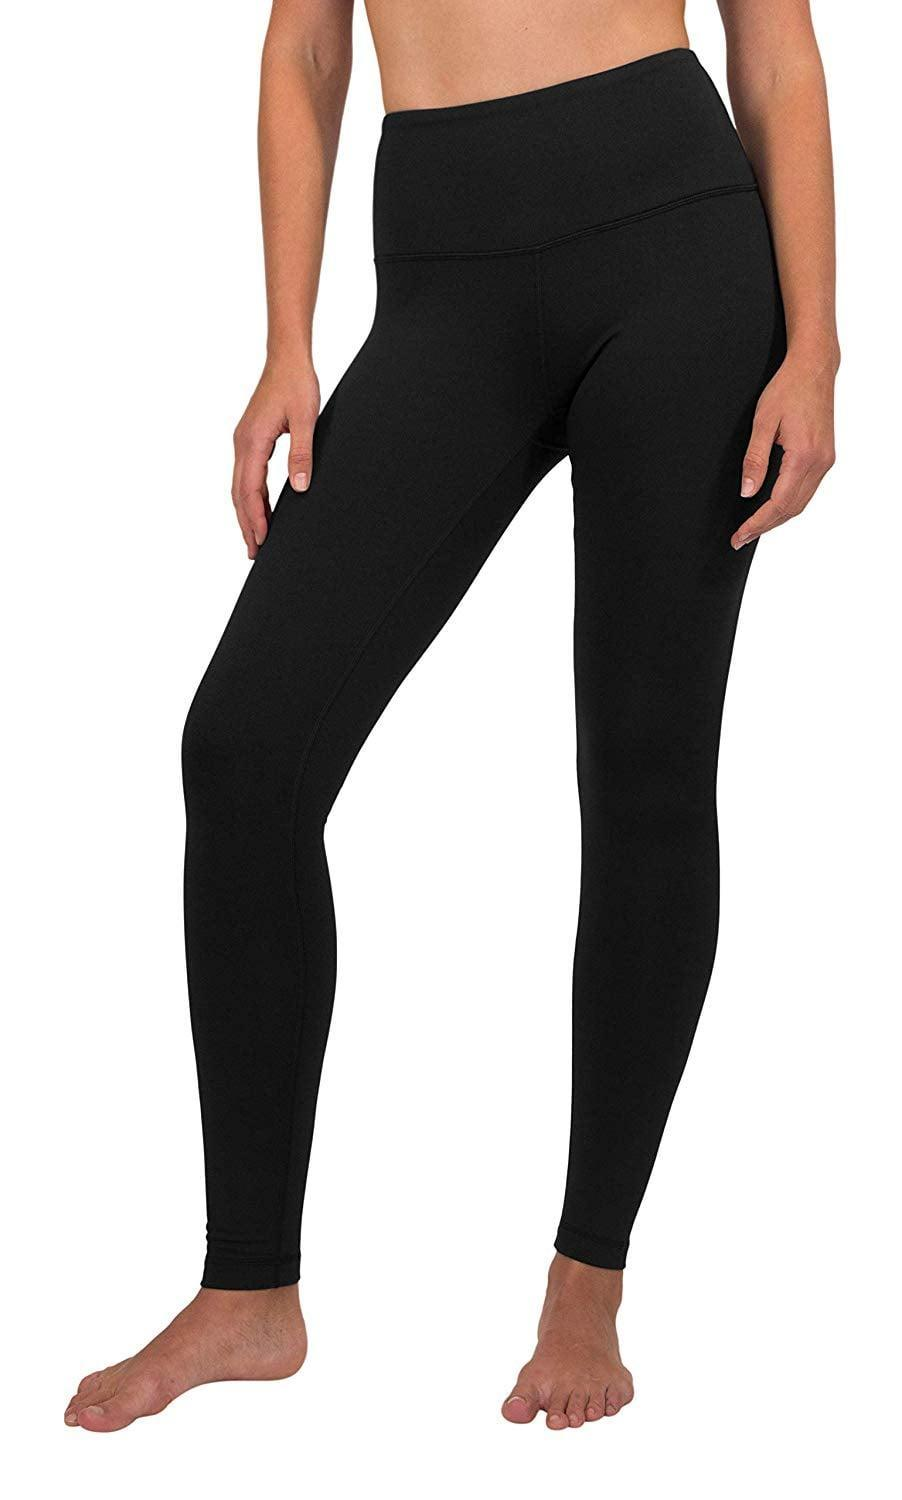 <p>These <span>90 Degree by Reflex High-Waist Fleece-Lined Leggings</span> ($19, originally $27) are so genius. They're great for outdoor workouts.</p>